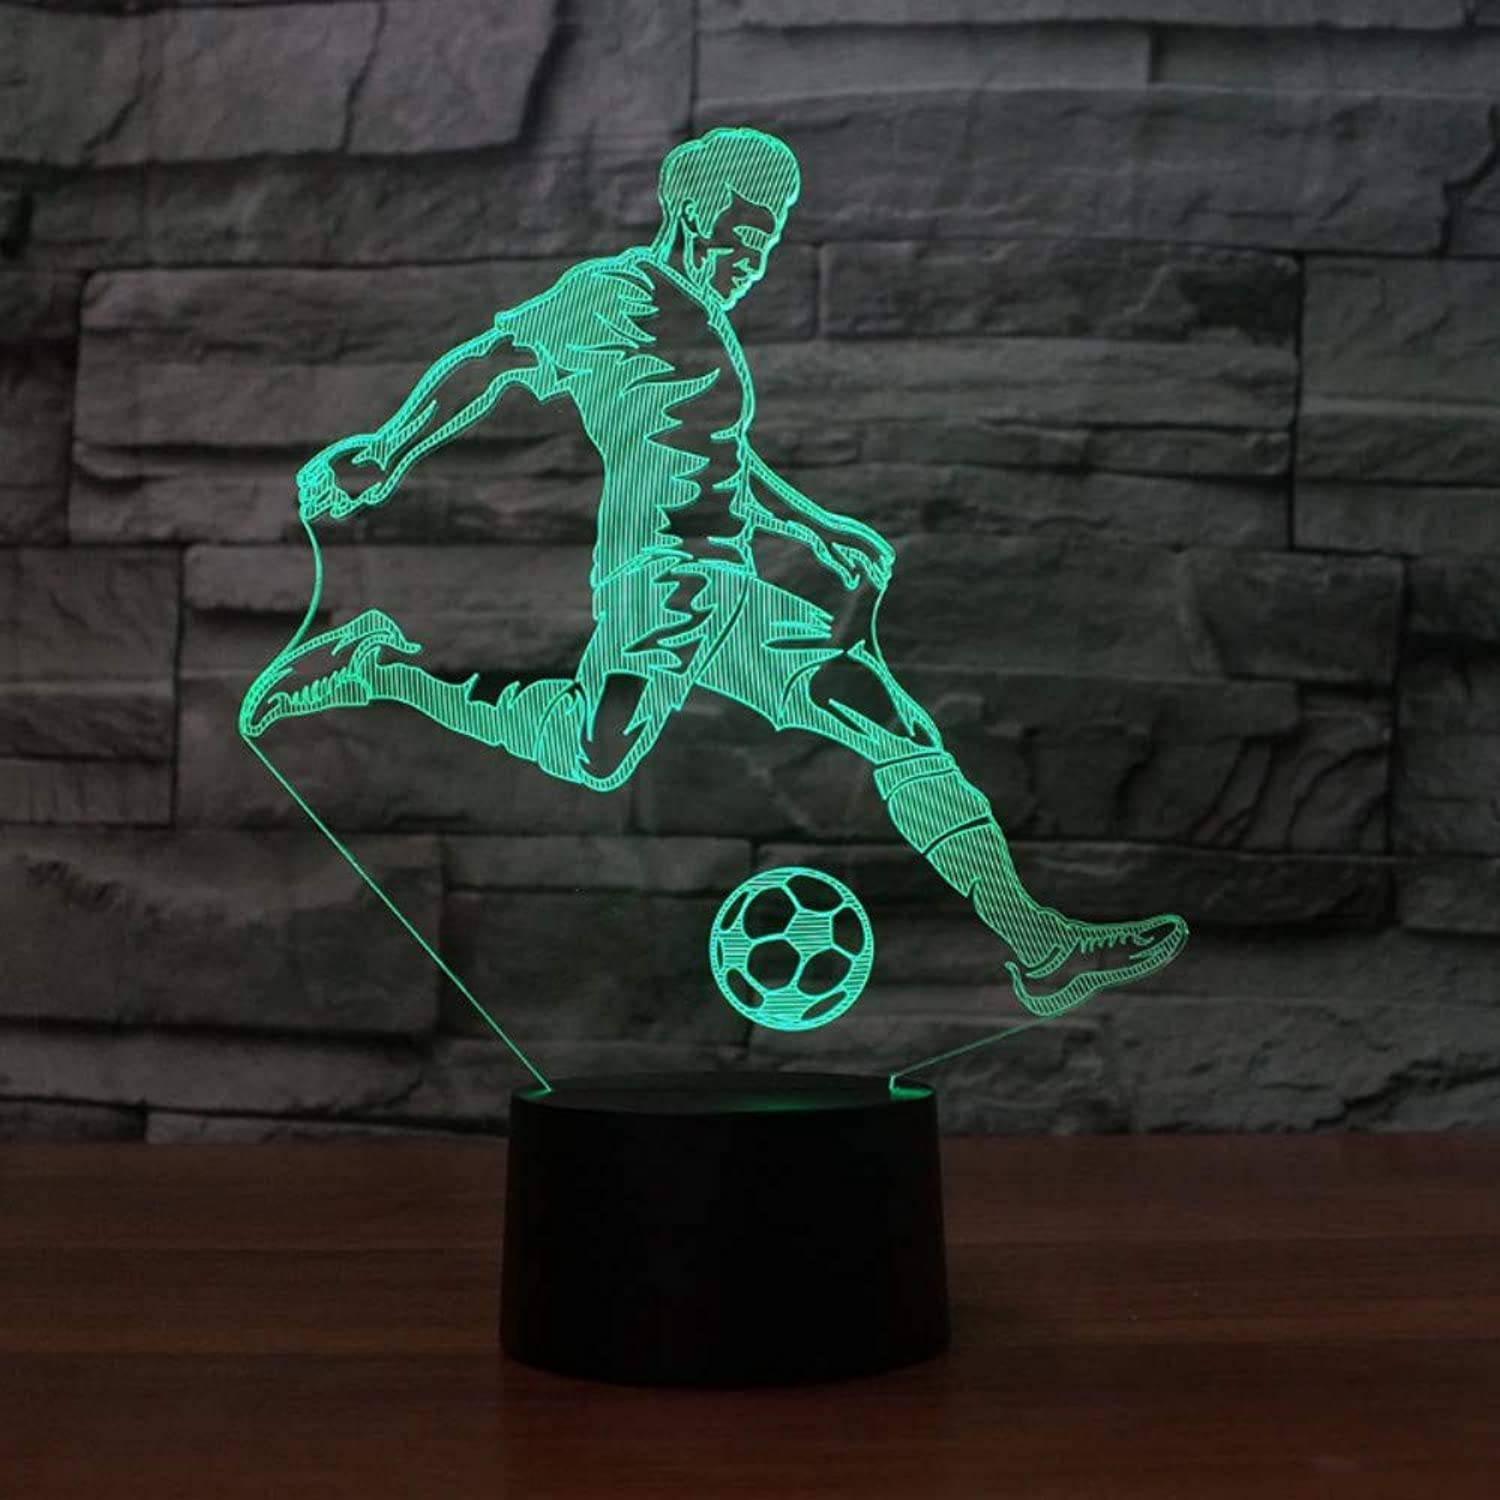 Zonxn 3D Led Table Lamp Kids Bedroom Bedside Sleep Playing Football Modelling Touch Button USB Home Decor Soccer Player Night Lights